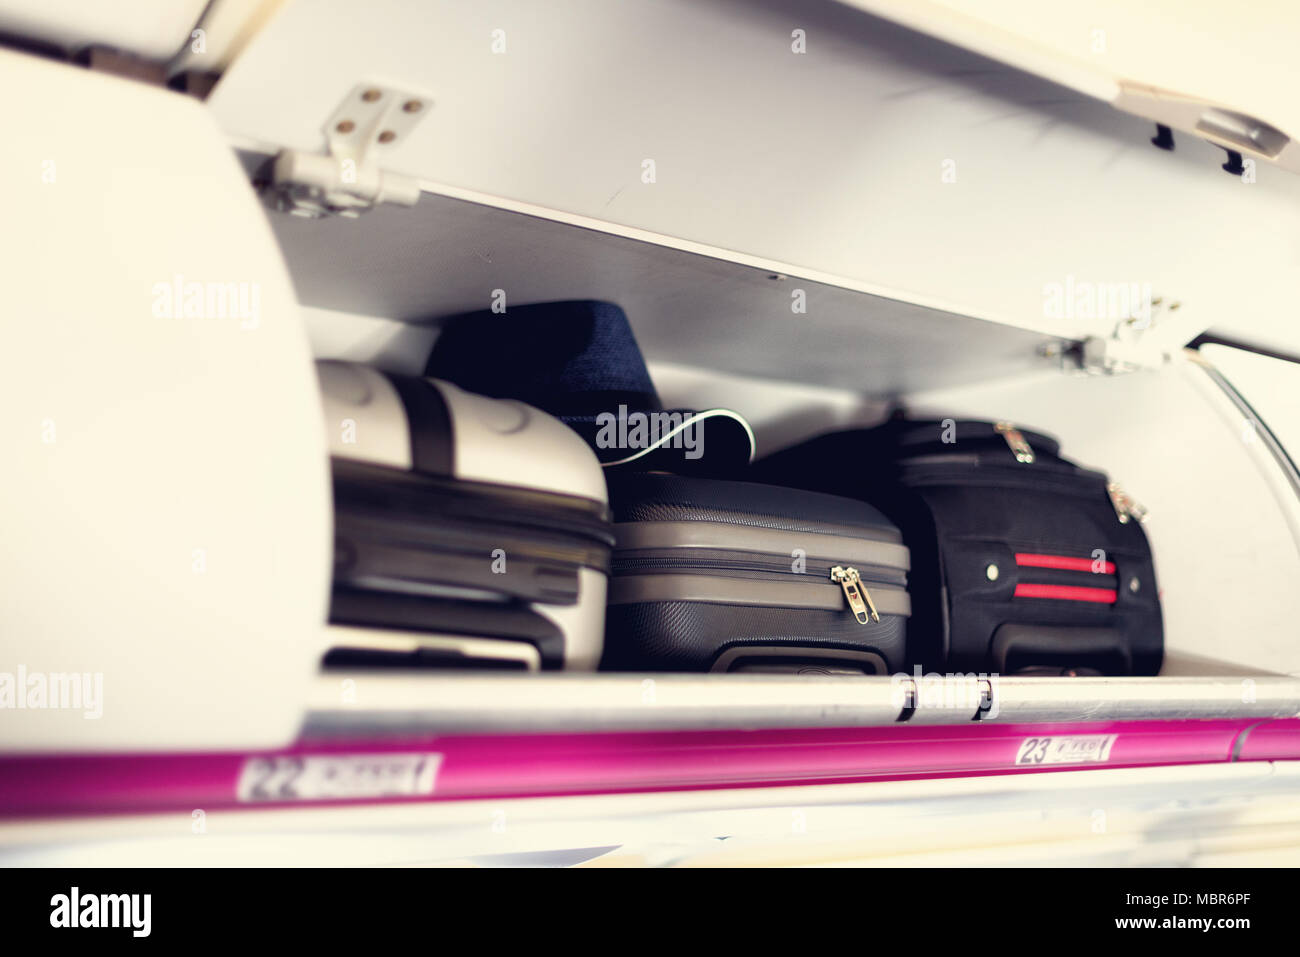 hand-luggage compartment with suitcases in airplane. carry-on